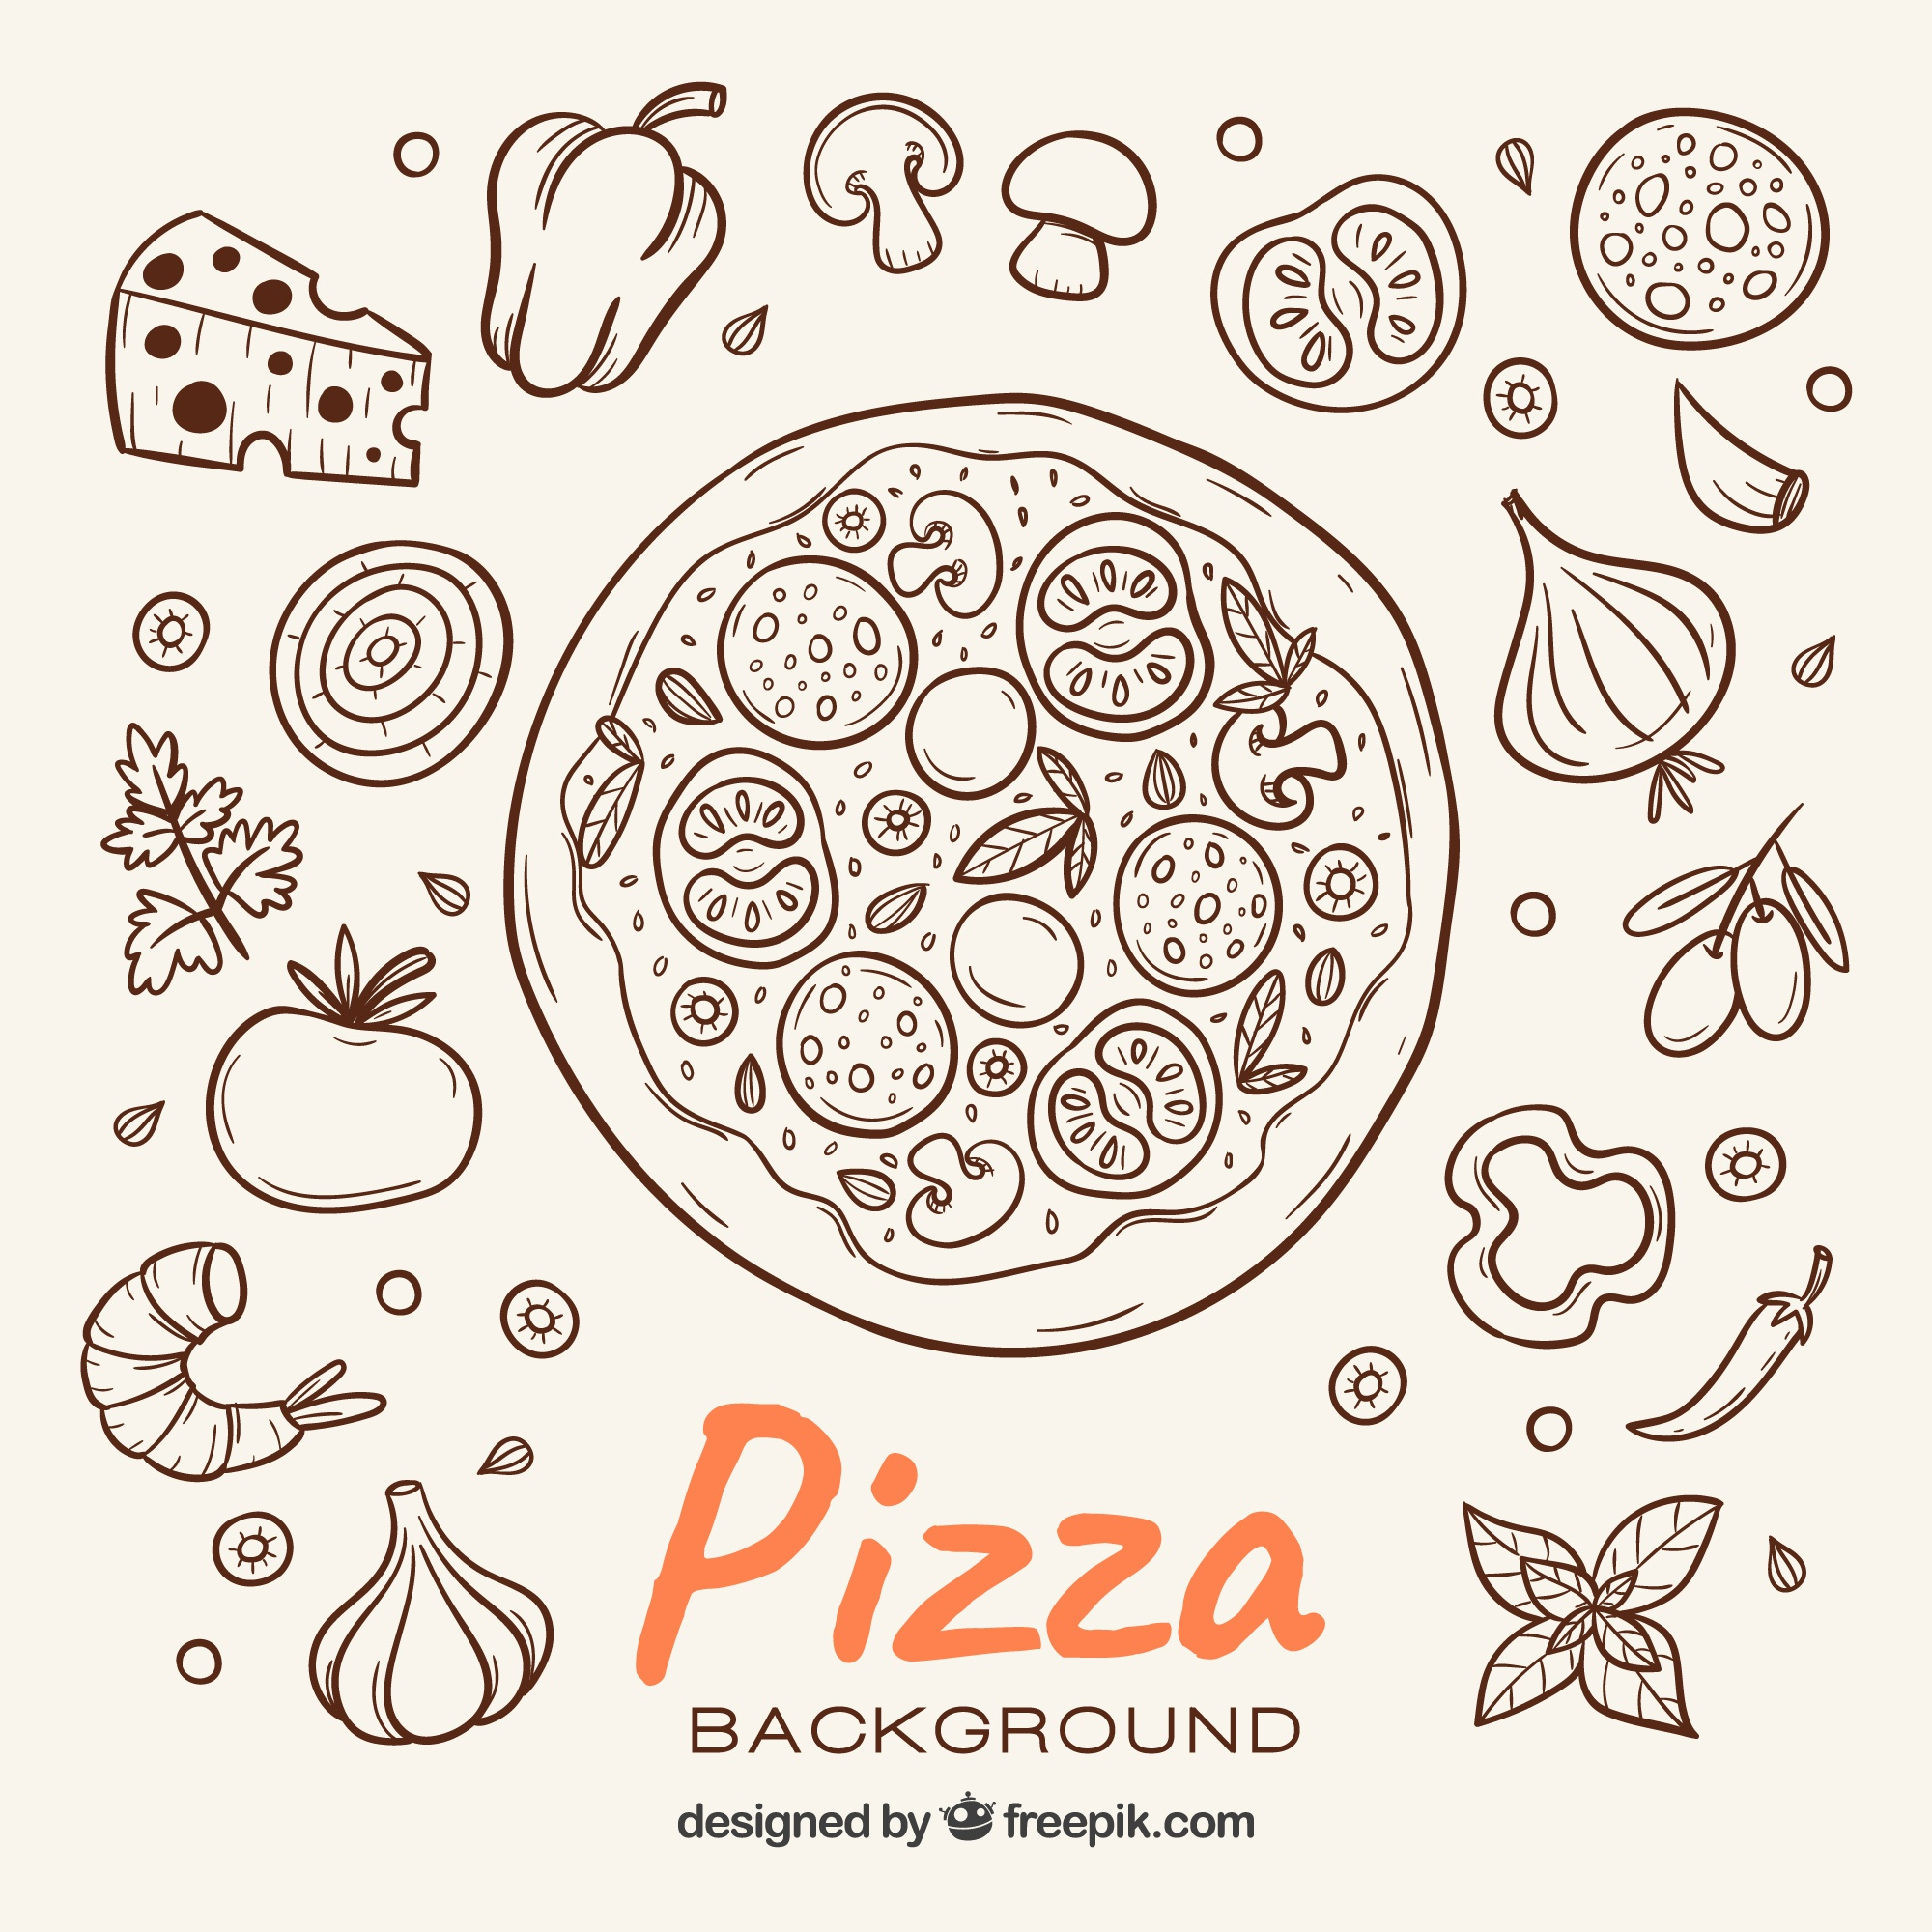 Pizza sketch background and ingredients